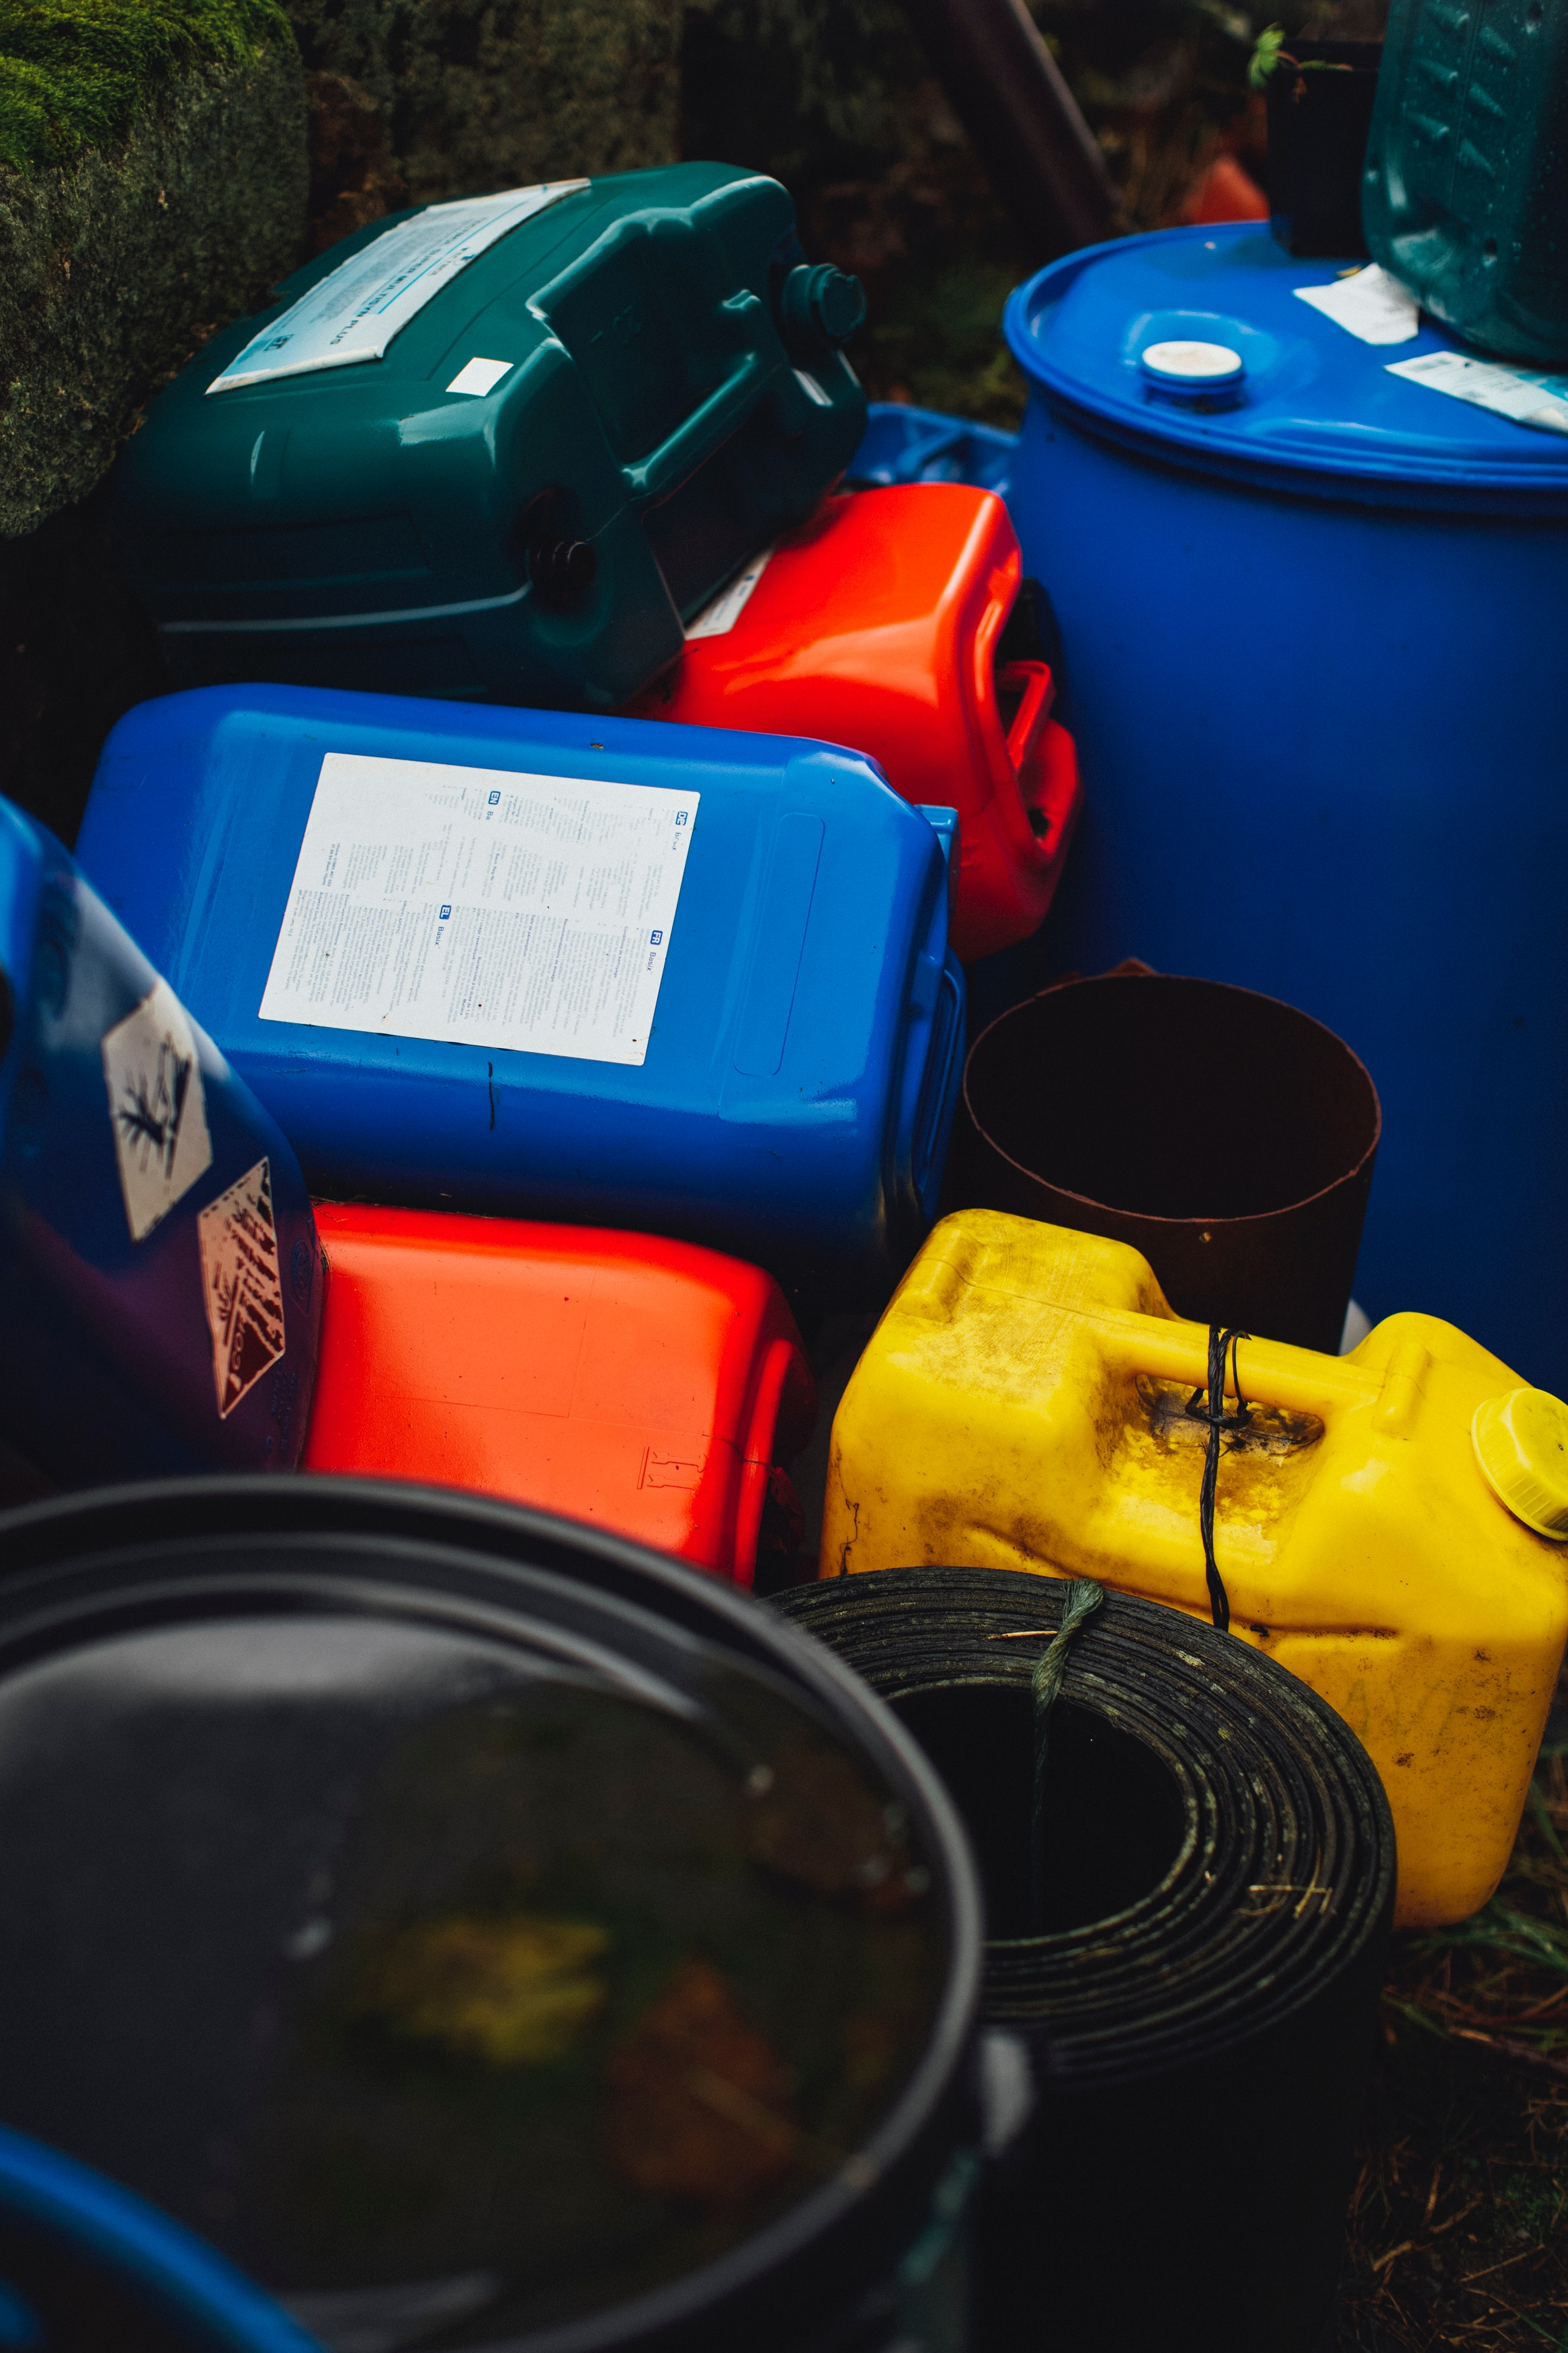 Toxic chemicals can leak from items in a hoarder's house